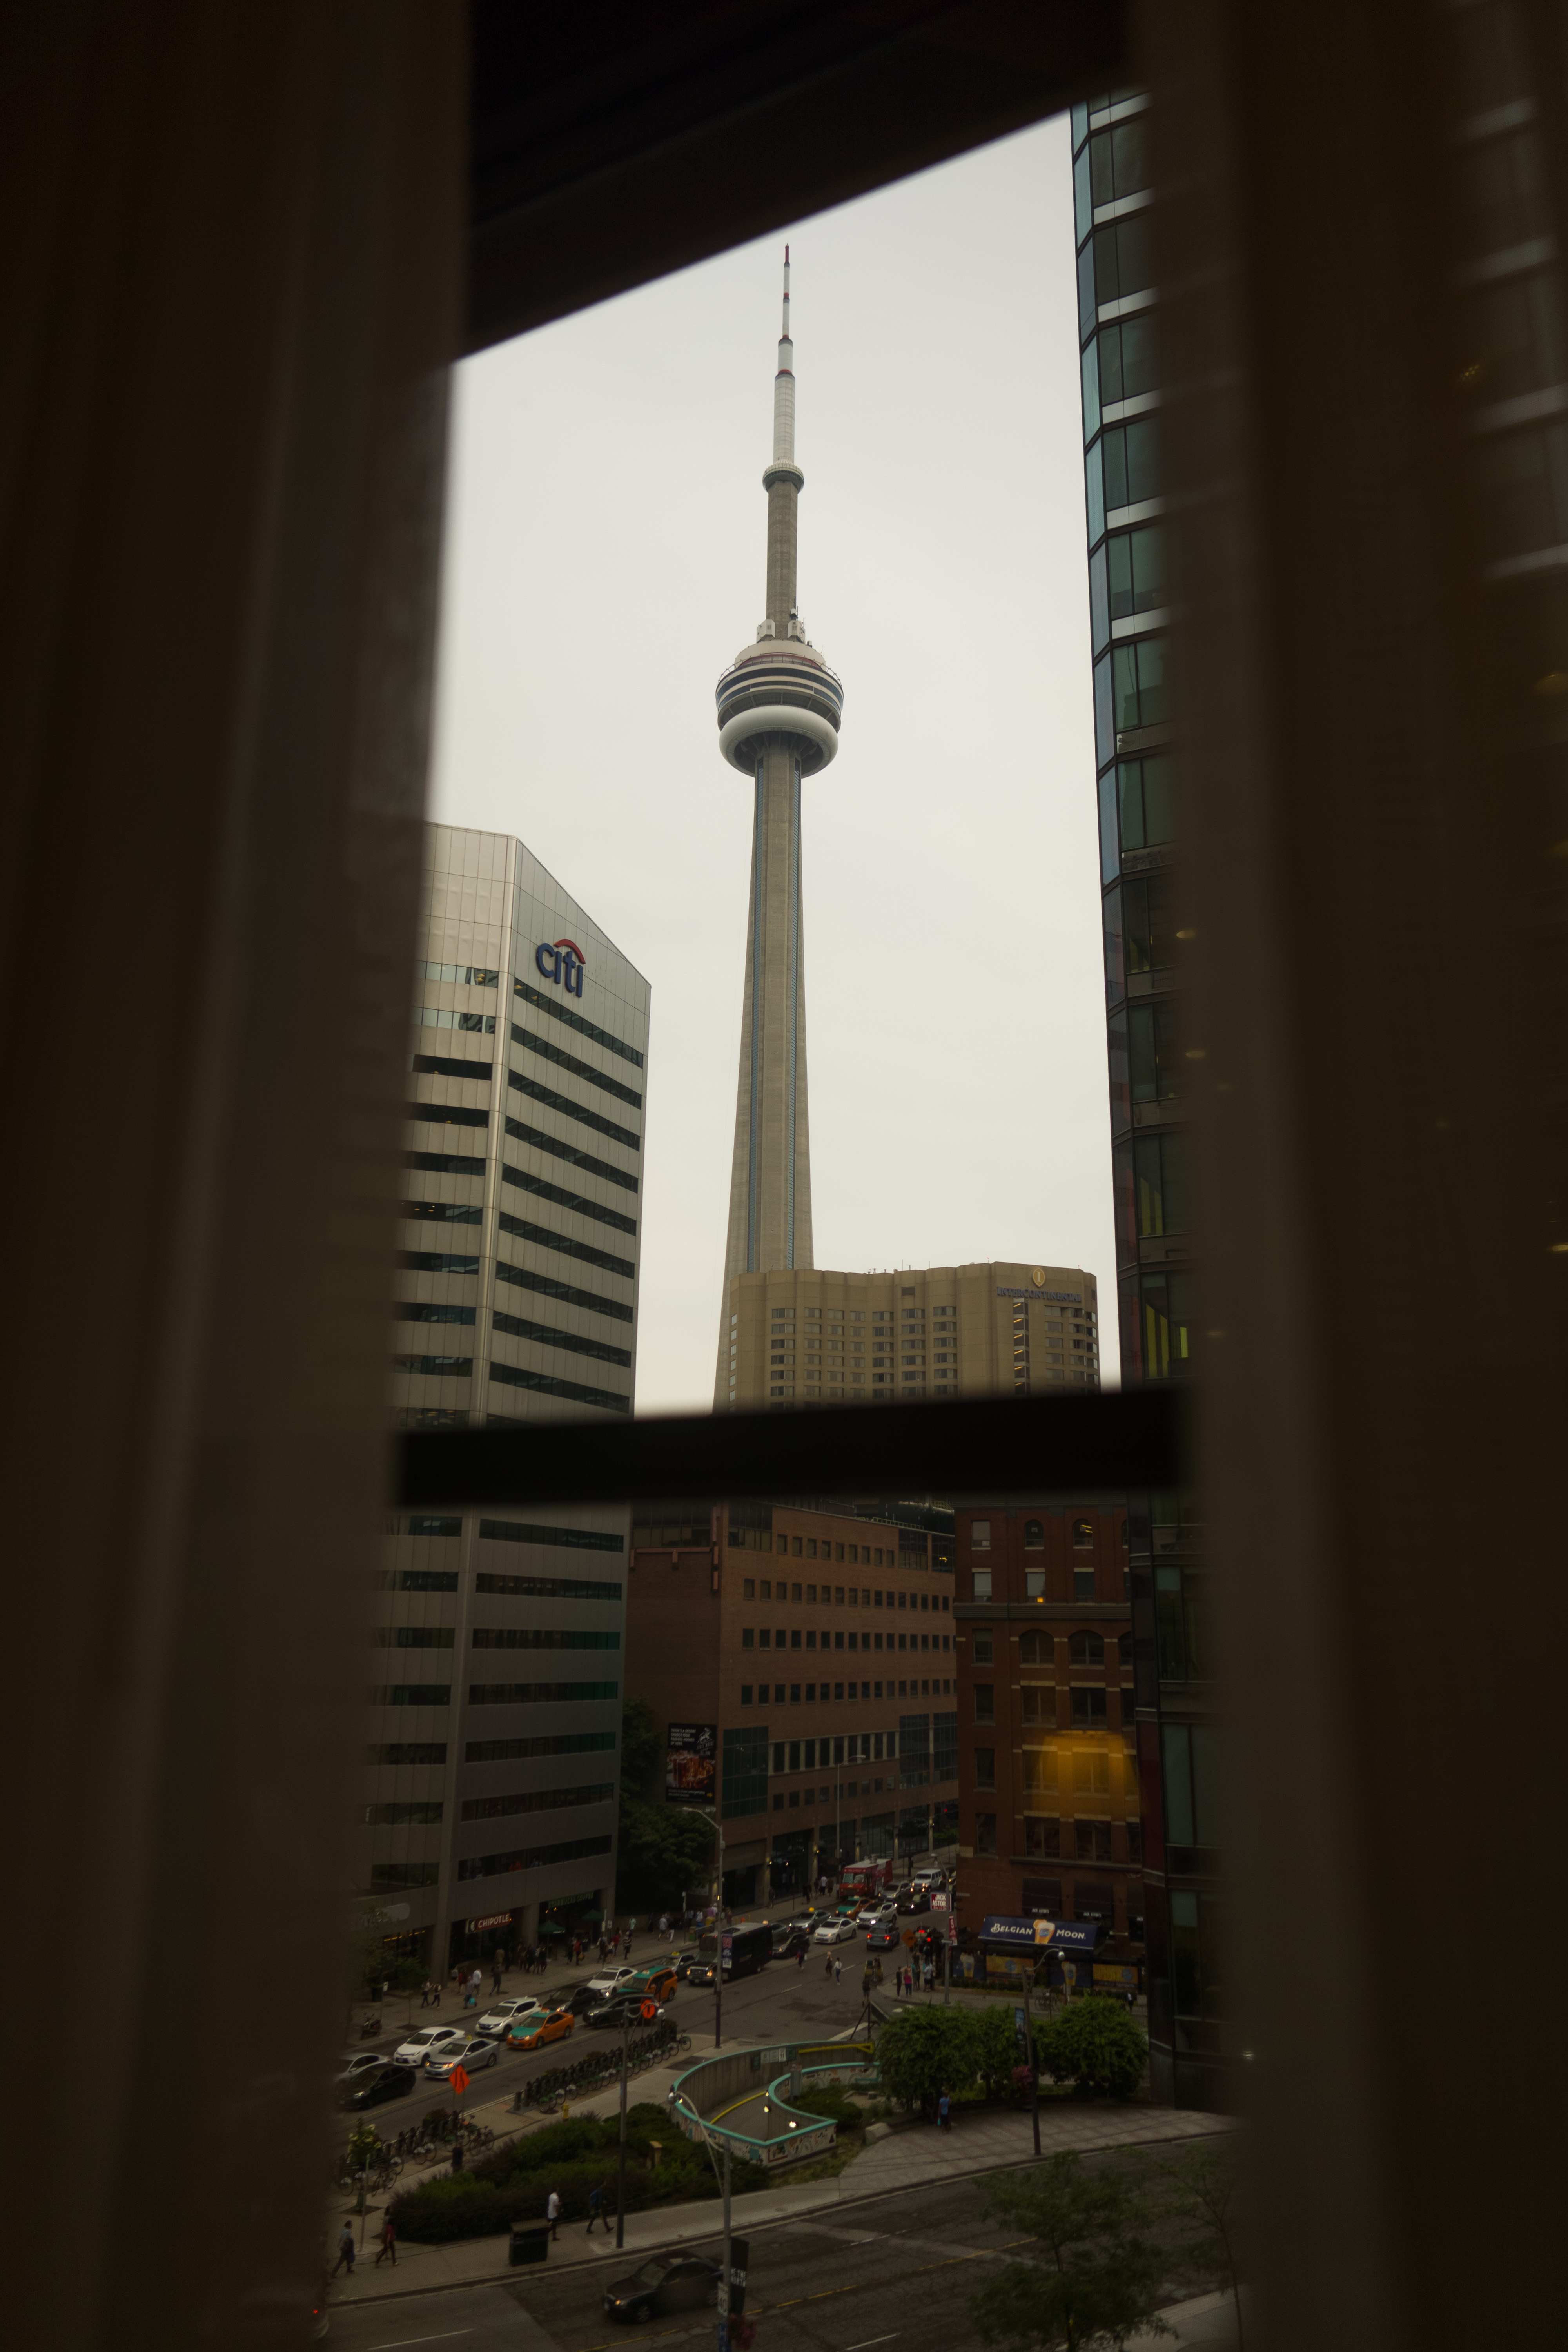 Midday in Toronto, view from the Fairmont Hotel